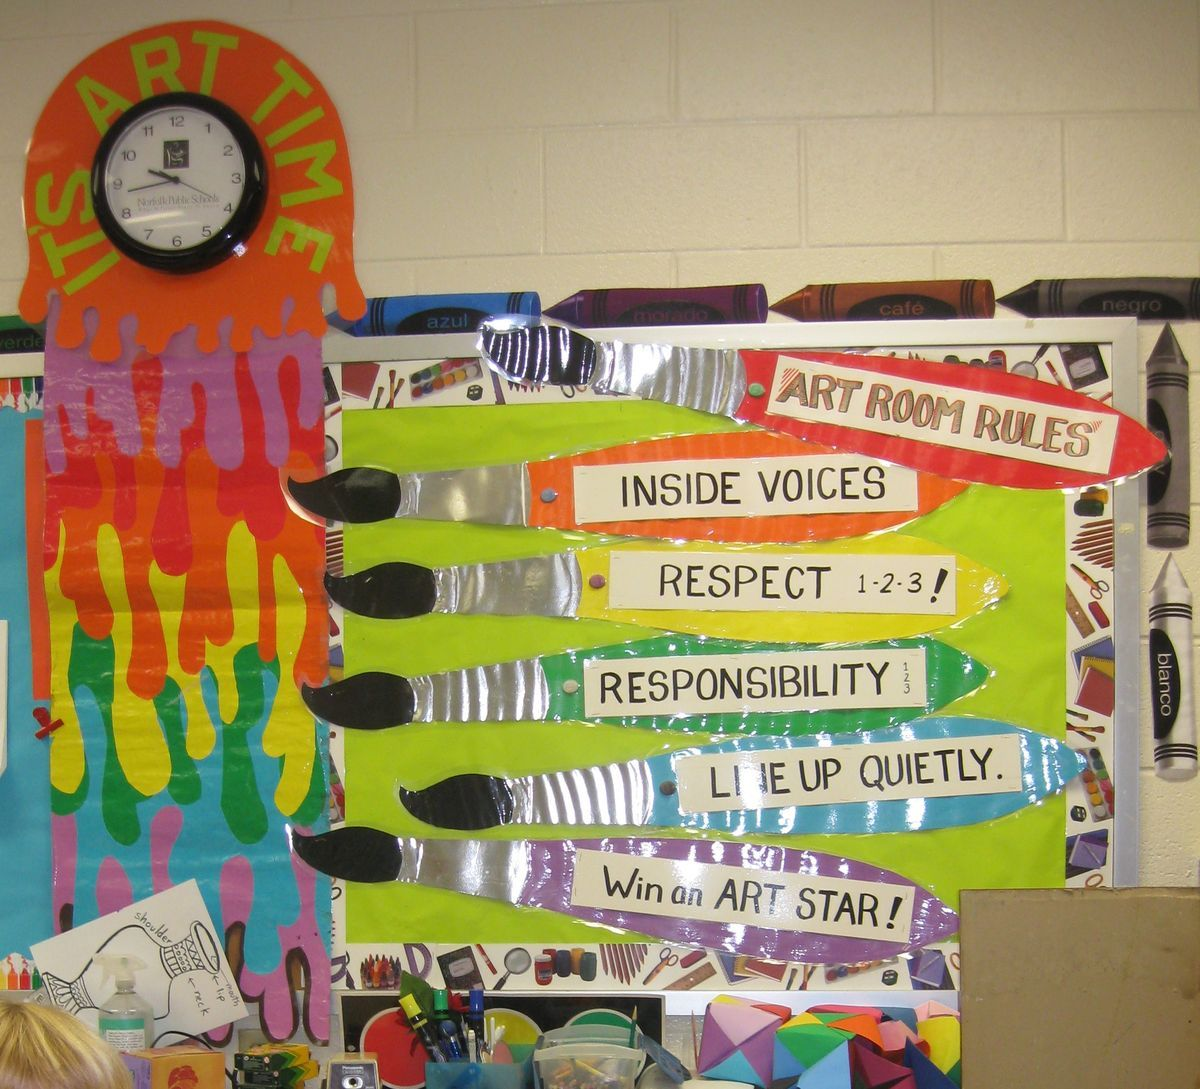 Pin by Meredith Cravin on School | Art room rules, Art